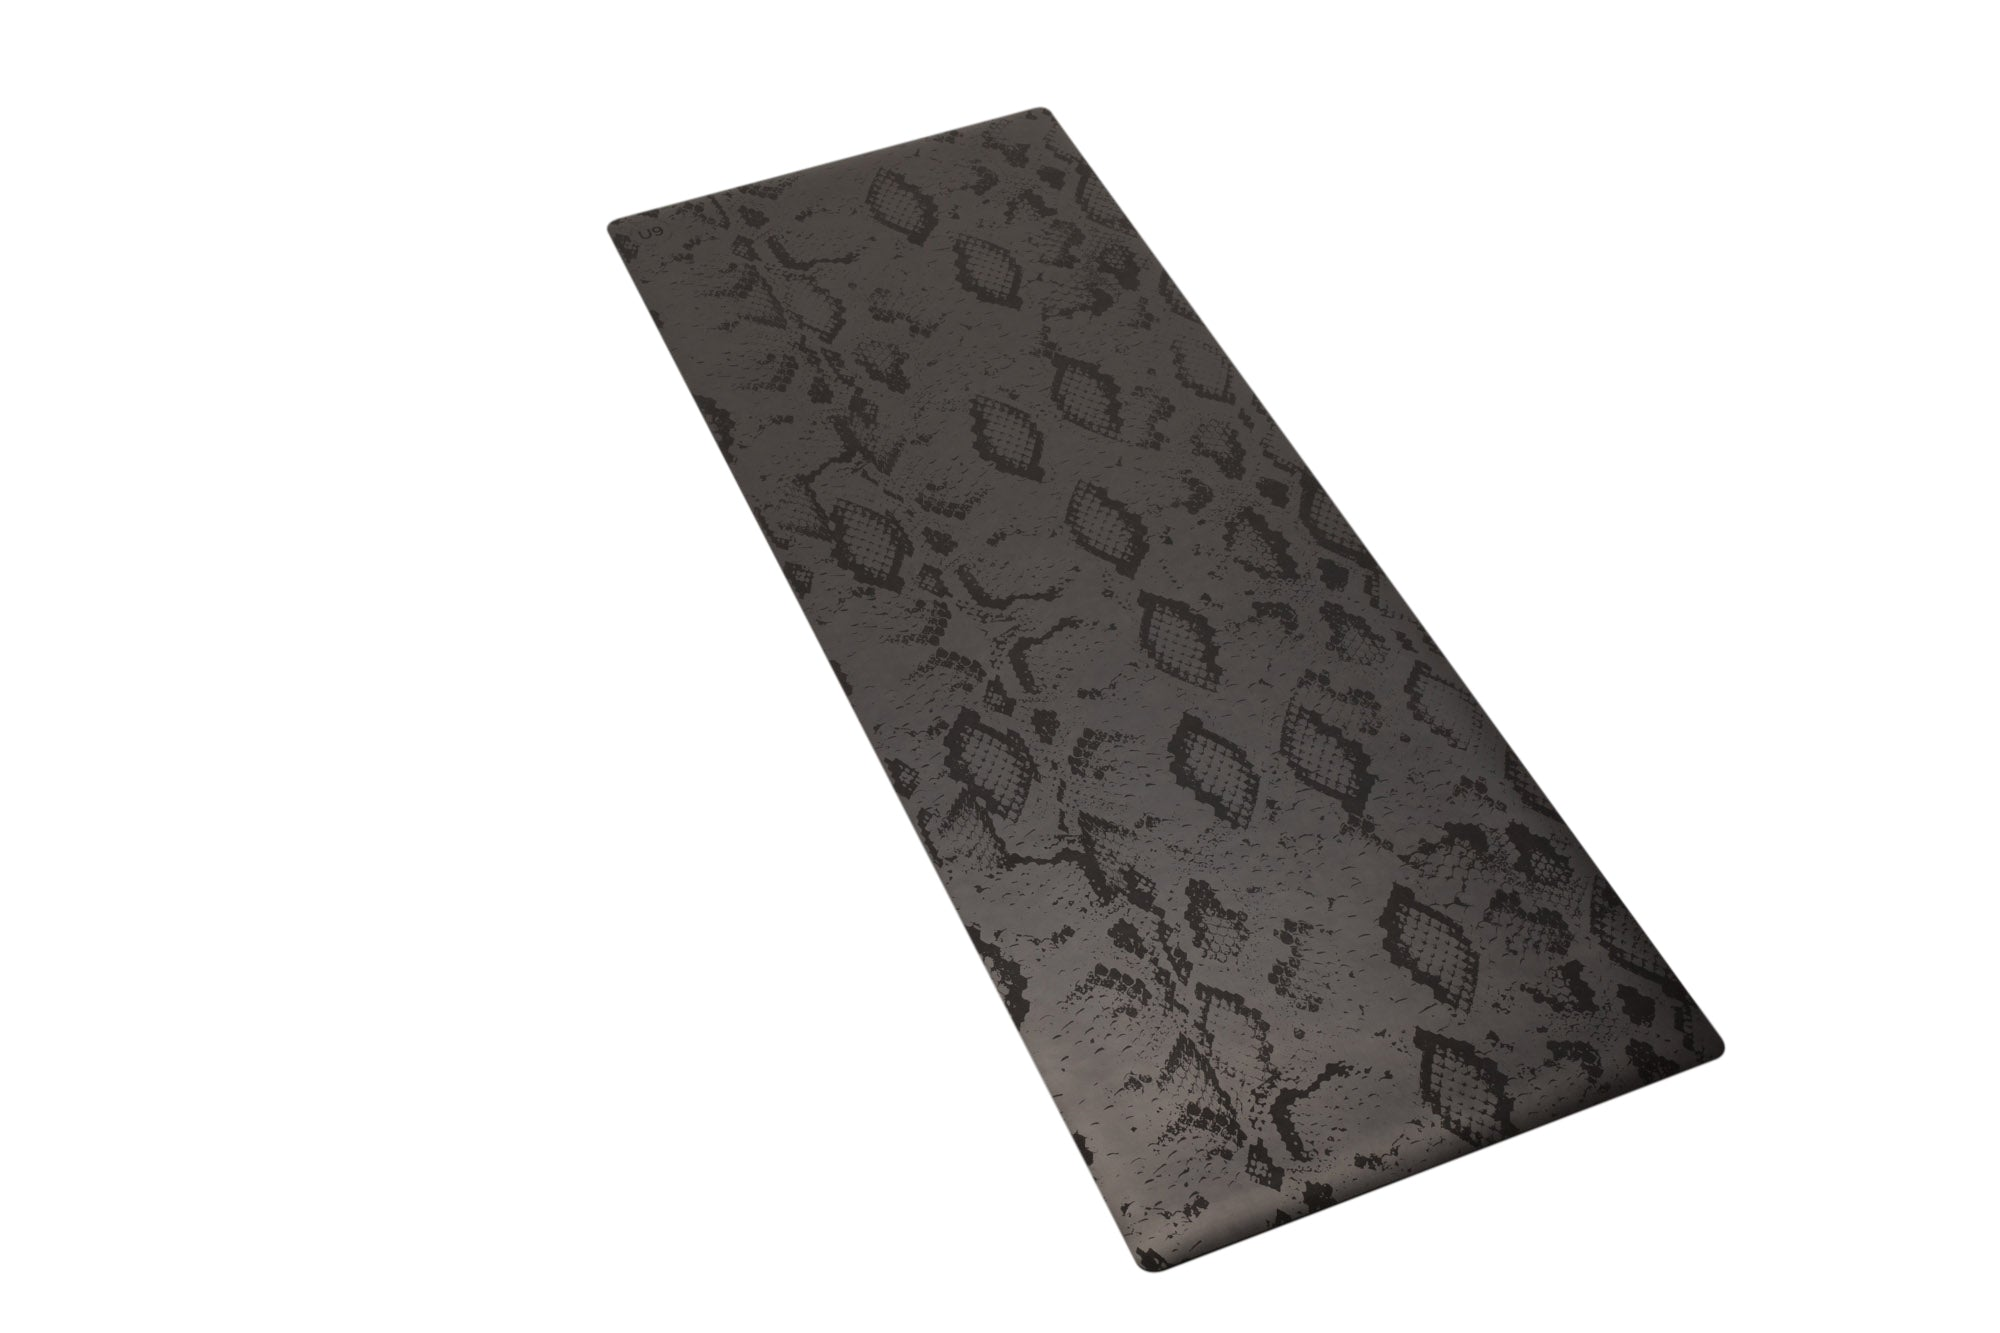 UNIT NINE Charcoal Python Rubber Yoga Mat & ADD YOUR INITIALS 3